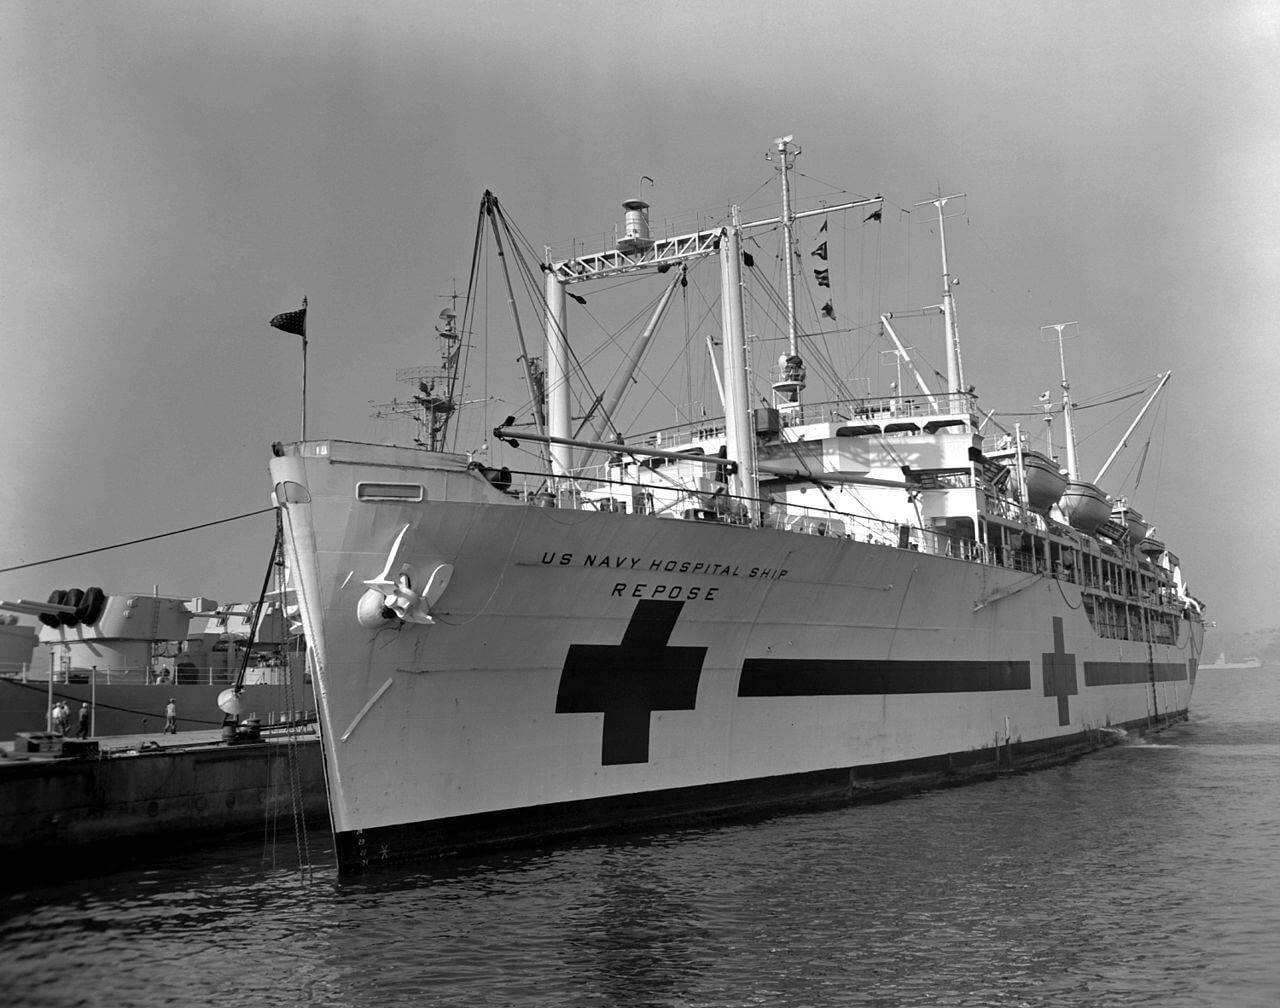 Large white ship with a red cross on its side.